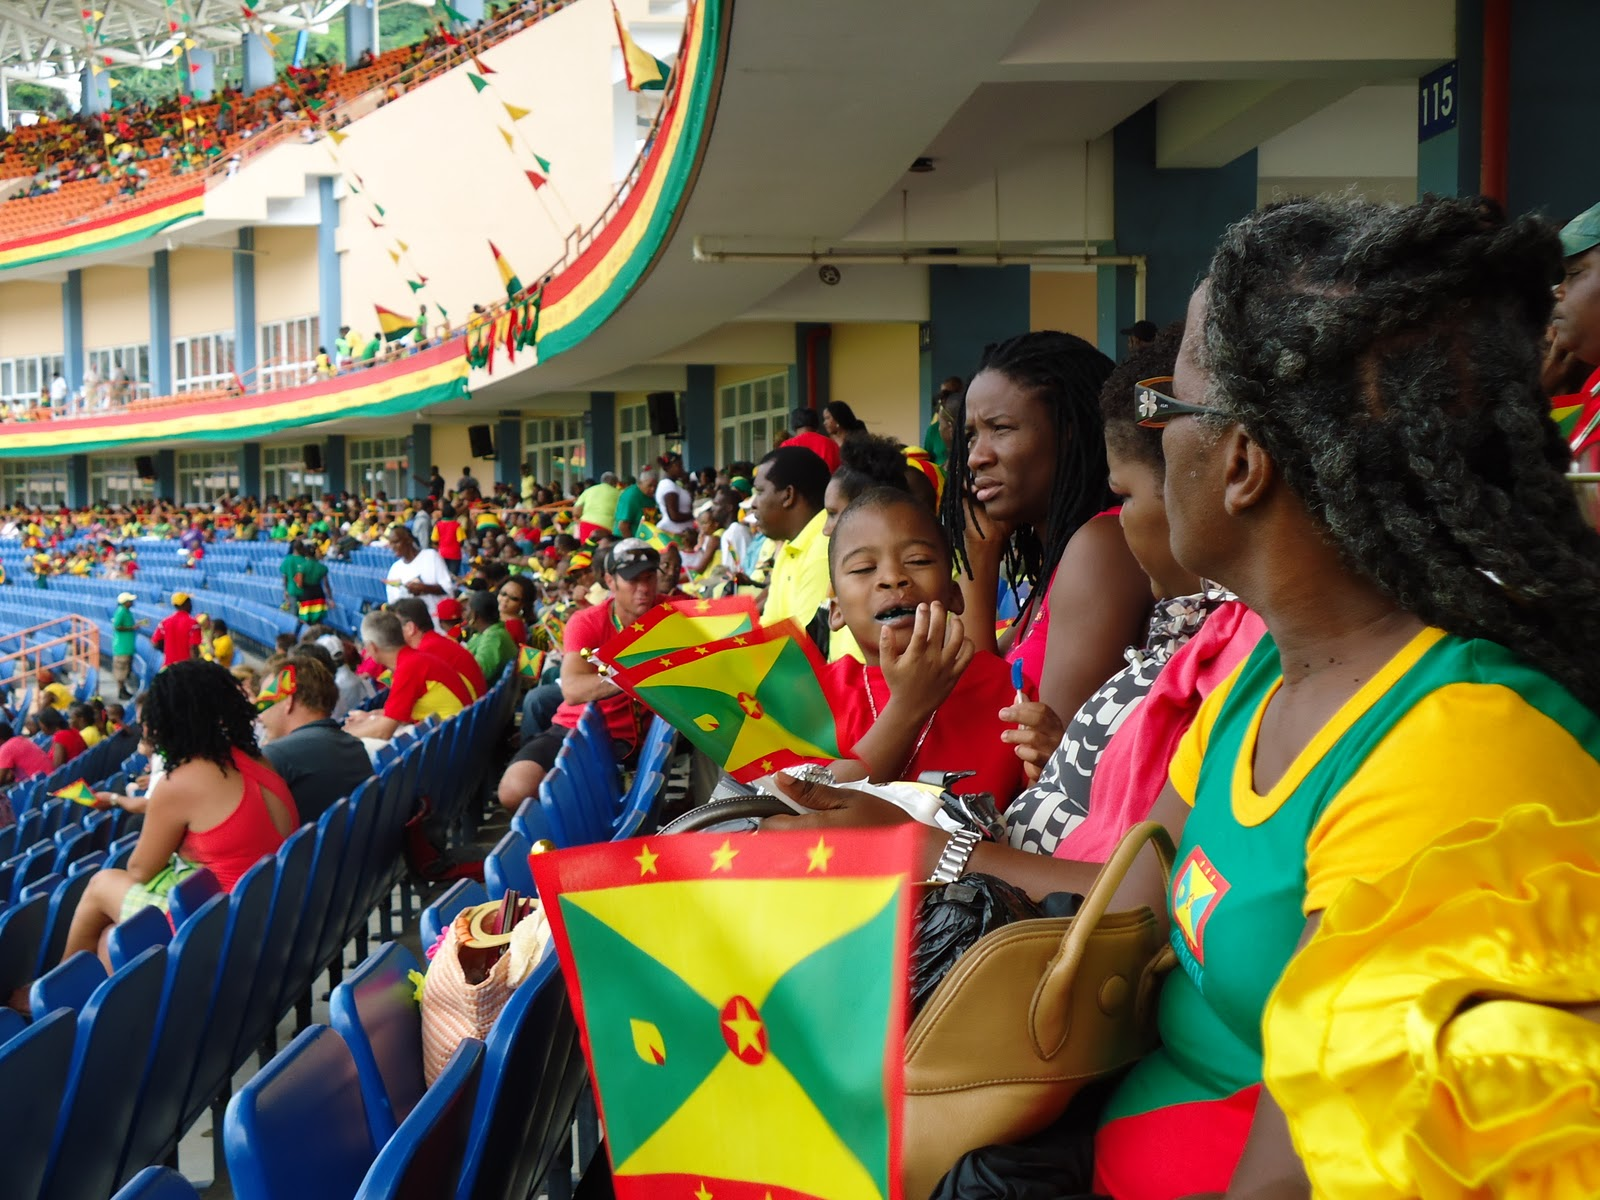 Grenada Independence Day Stock Images - Download 36 ... |Happy Independence Day Grenada